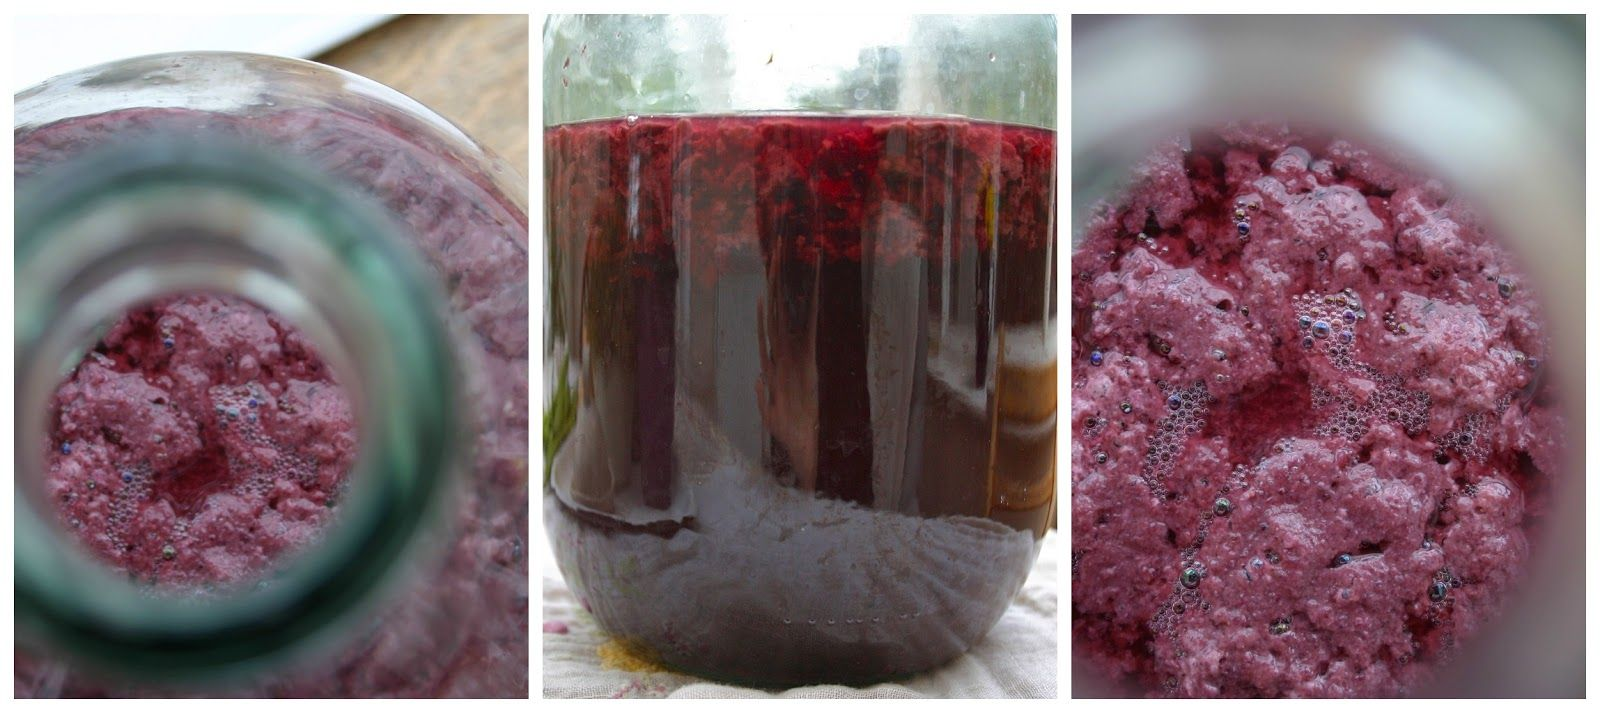 And Here We Are... How I Made Wild Blackberry Cider